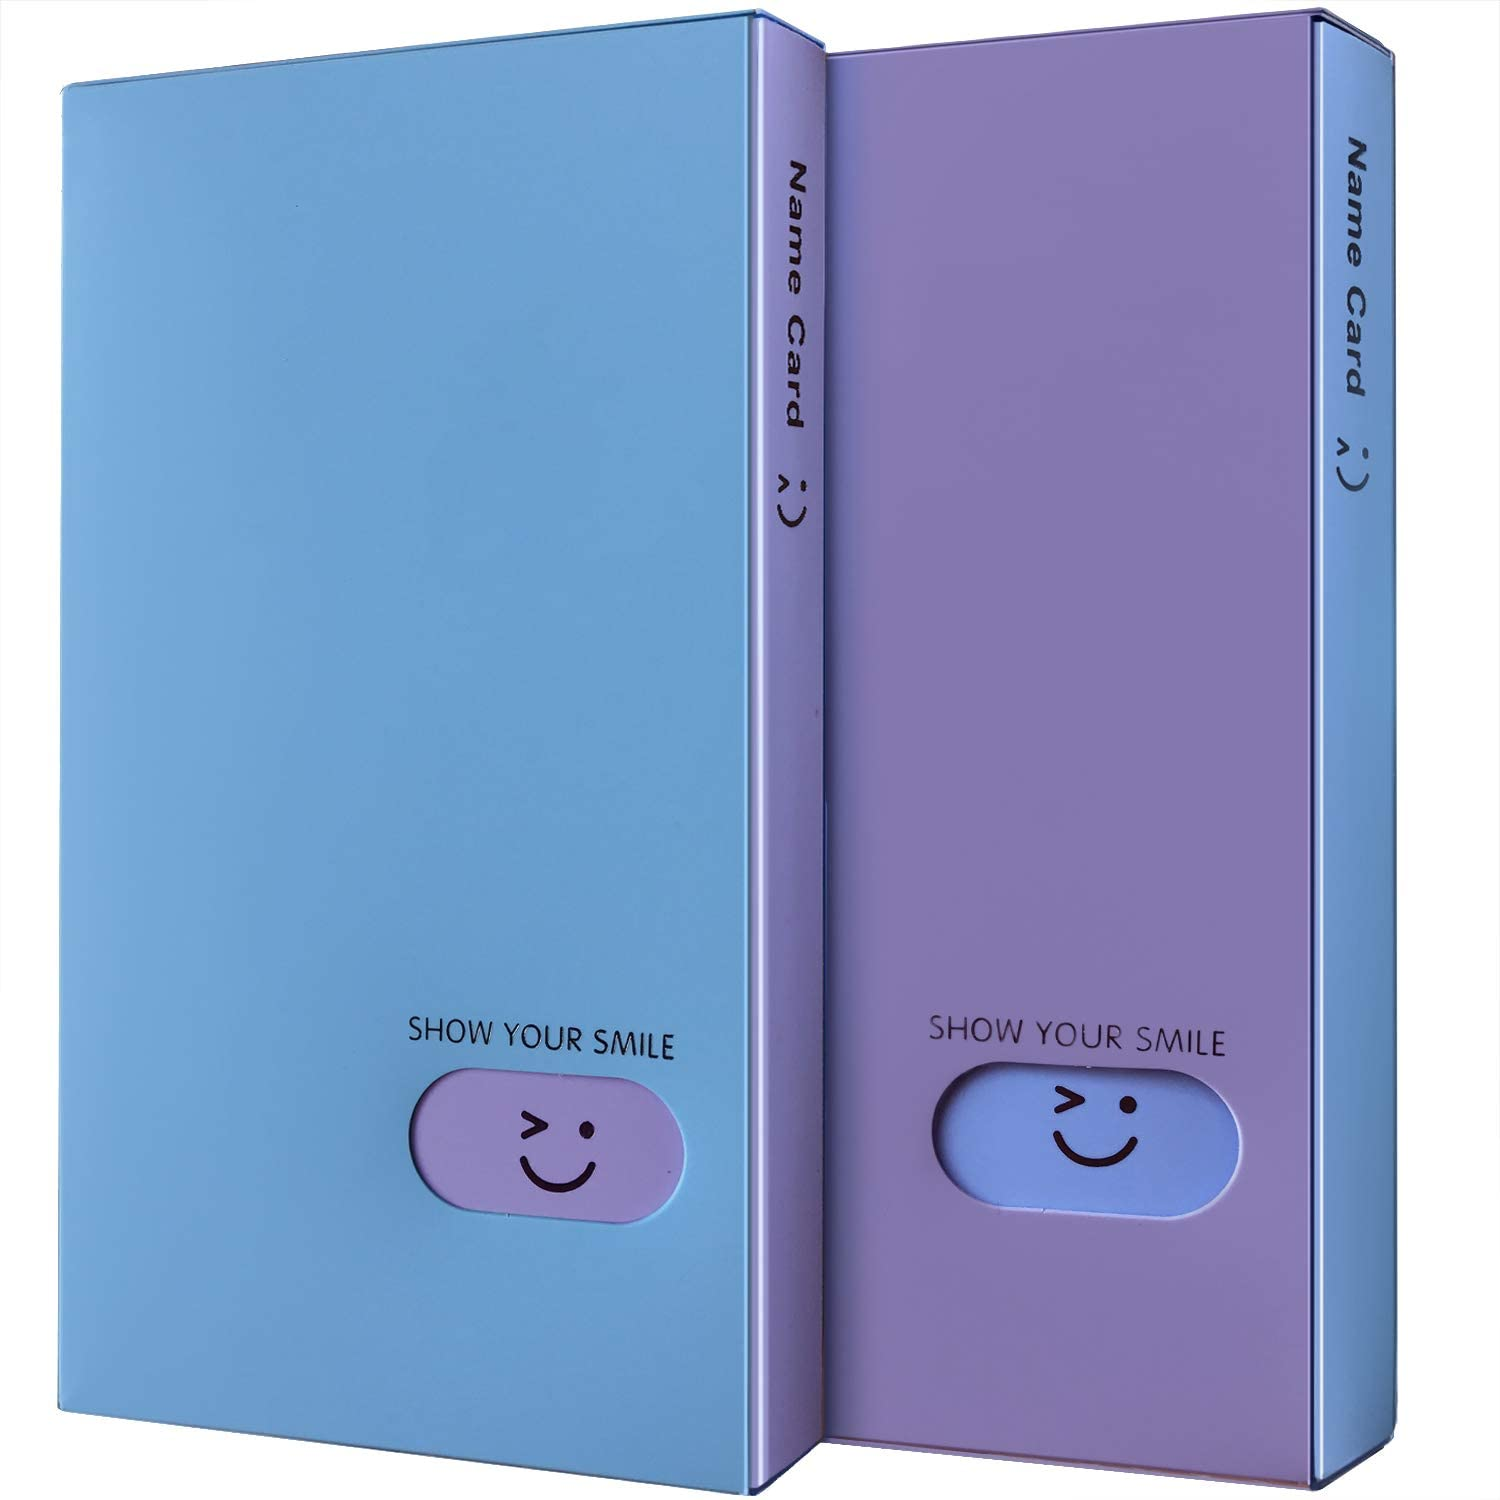 Initial heart Business Card Book Holders 2 Pack Color Name Card Book Rack Book Case Organizer ID Cards Personal Cards Credit Cards Photo Album LOMO Cards Storage 120 Pockets (Blue-Purple)